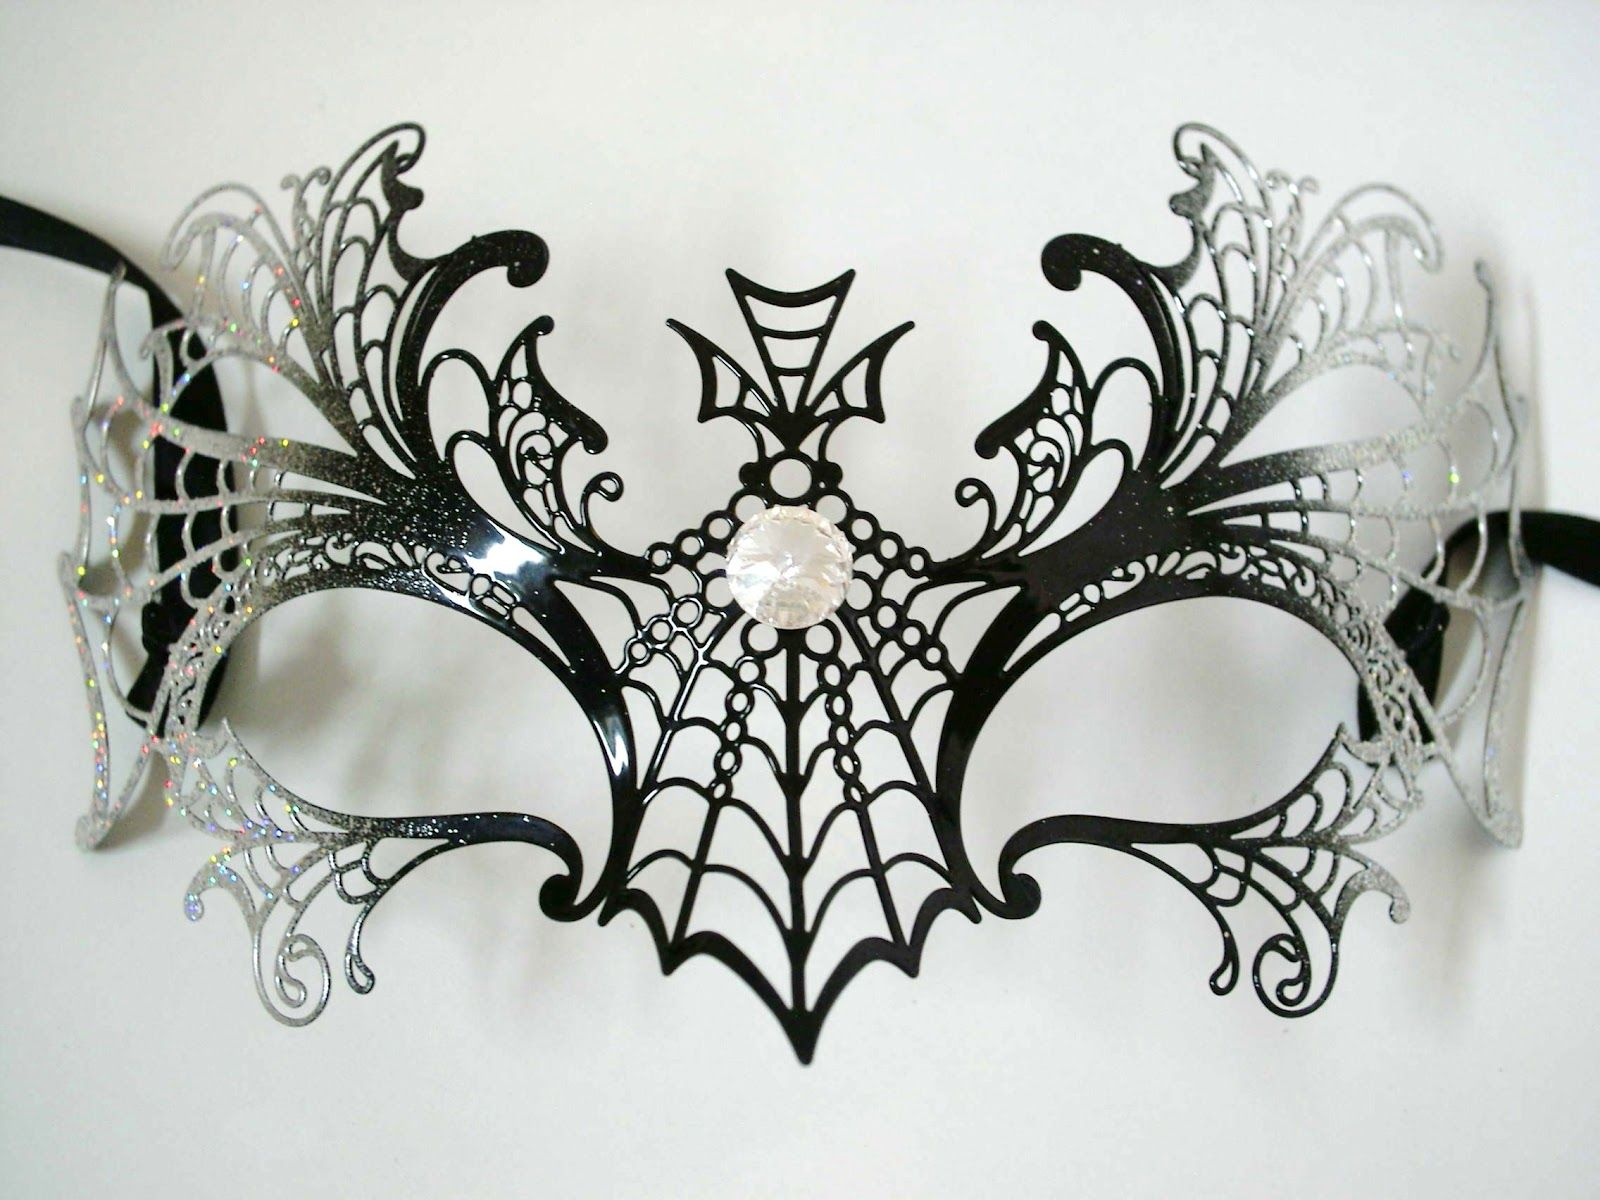 Masquerade Mask Designs | Masquerade Mask Designs For Men Hawaii Dermatology Pictures